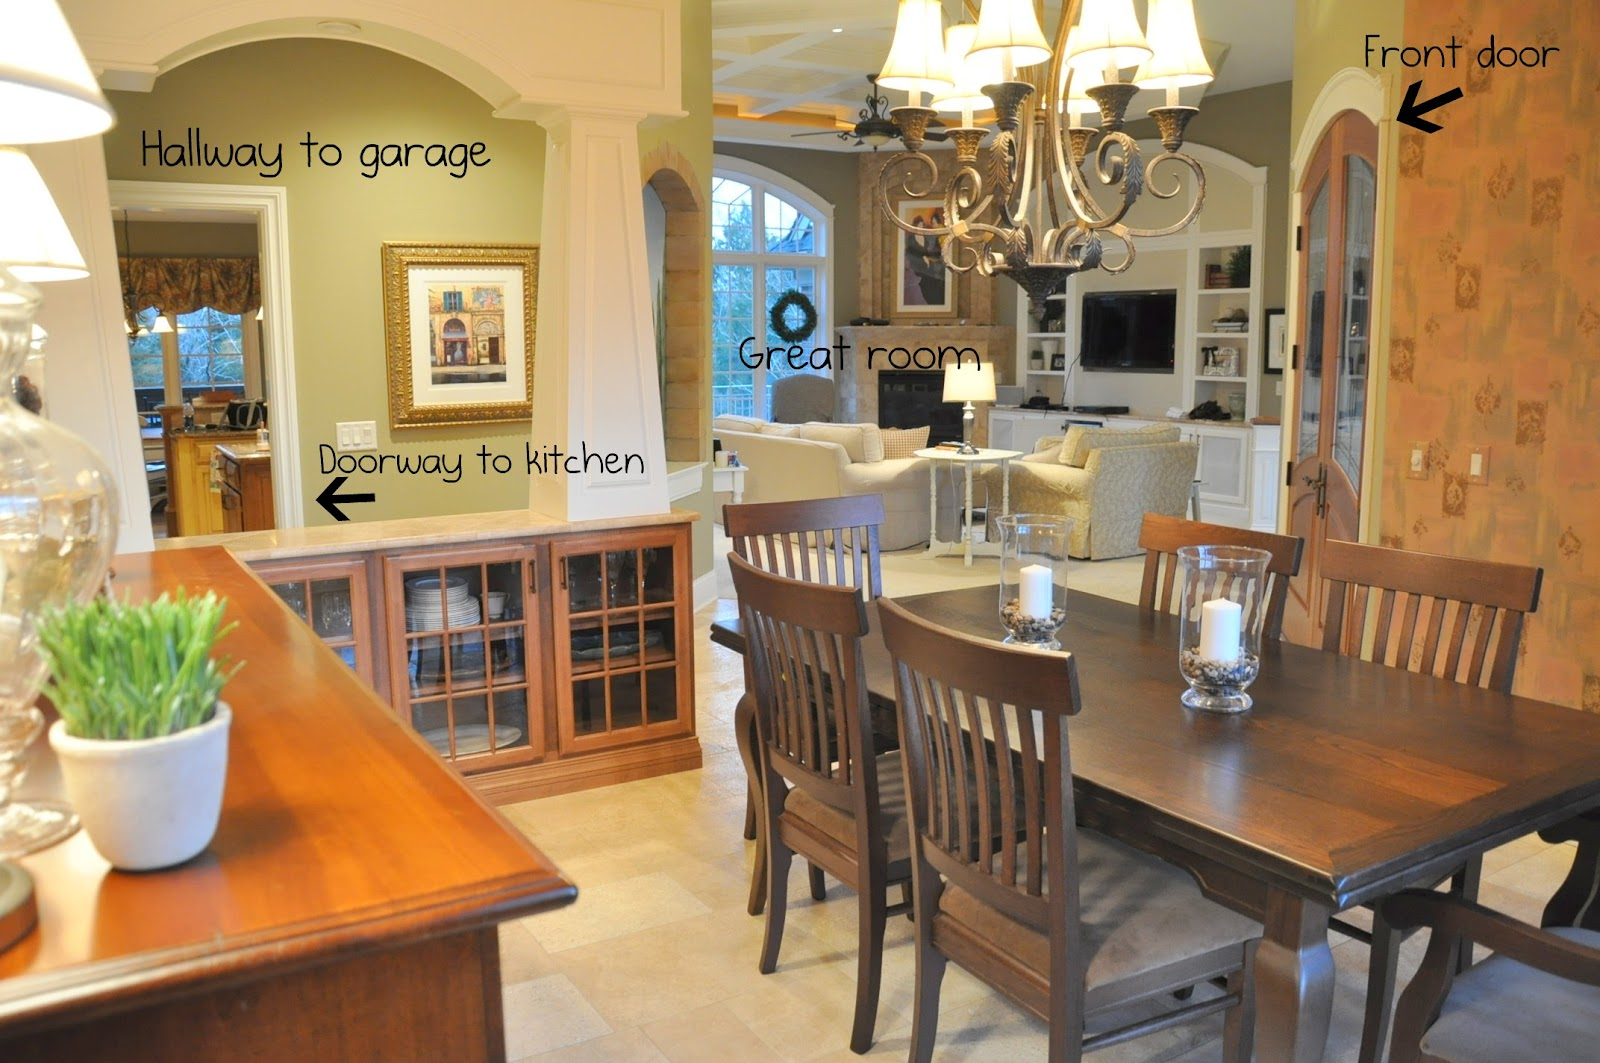 Here Is Another Picture So You Can See How When Walk In The Front Door Dining Room RIGHT There